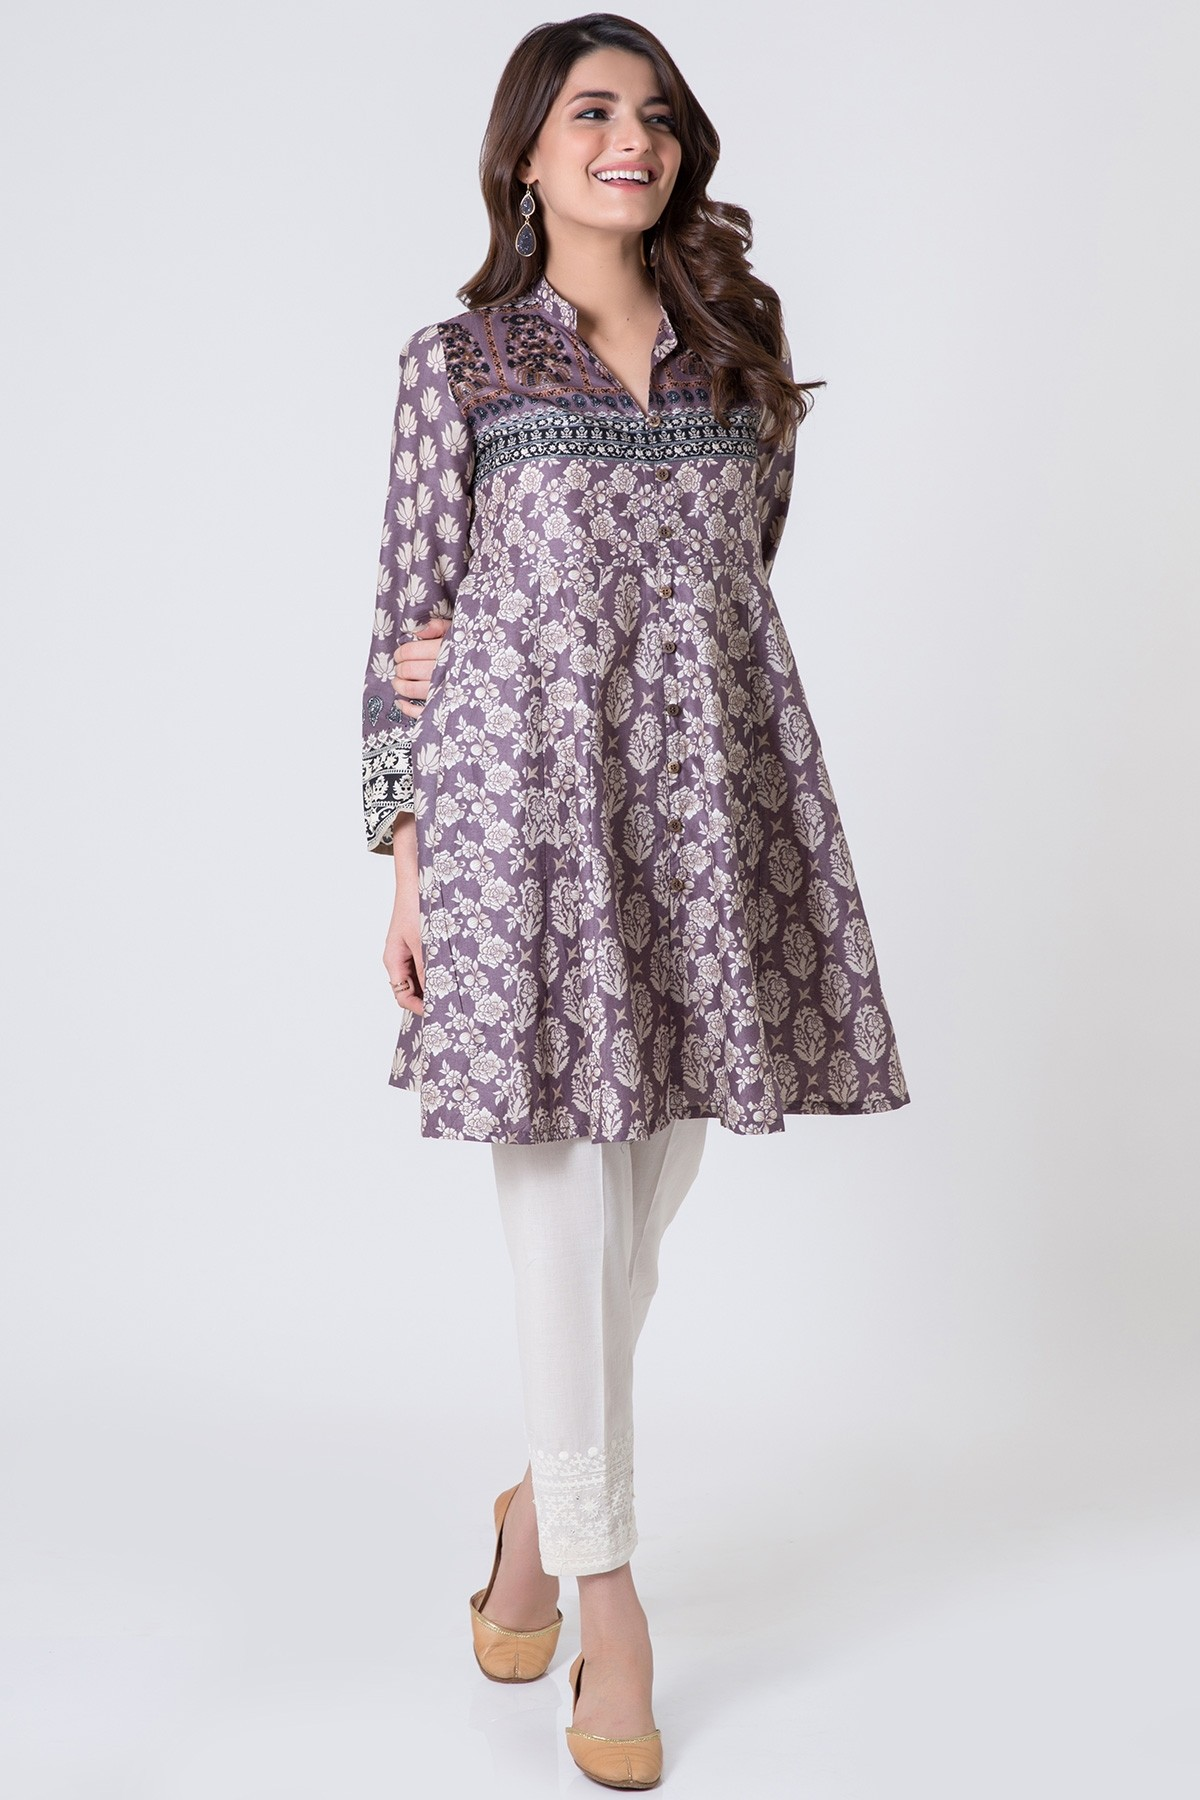 Khaadi eid dresses 2017 for girls collection